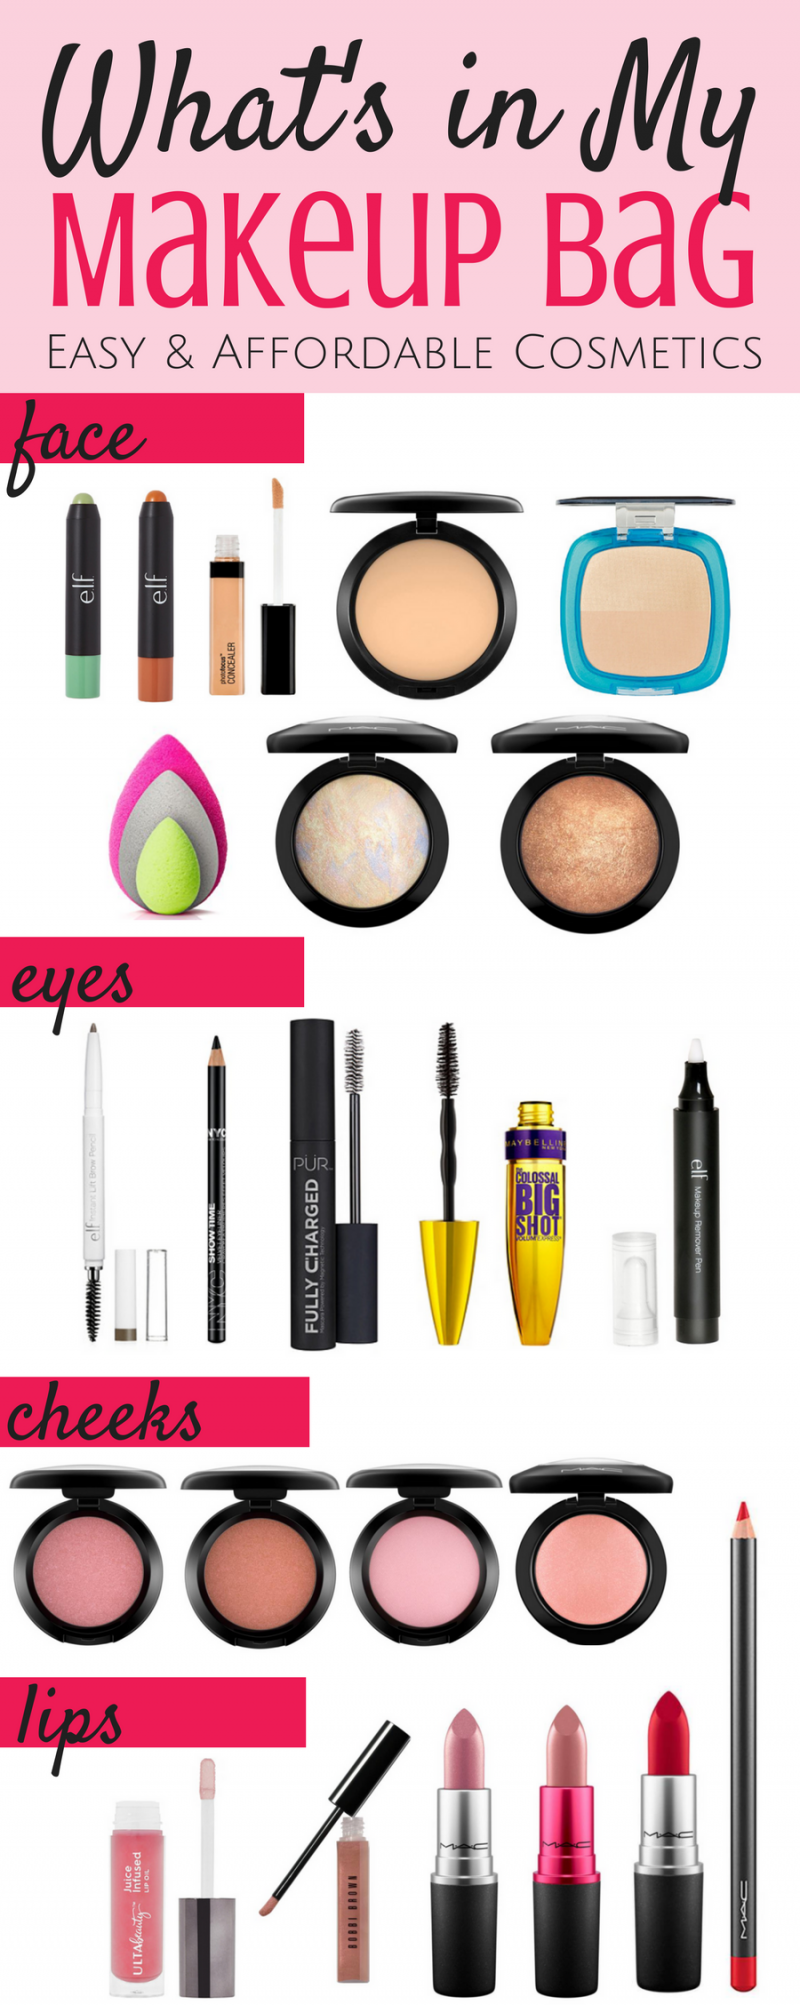 What's in My Makeup Bag: Easy Affordable Cosmetics